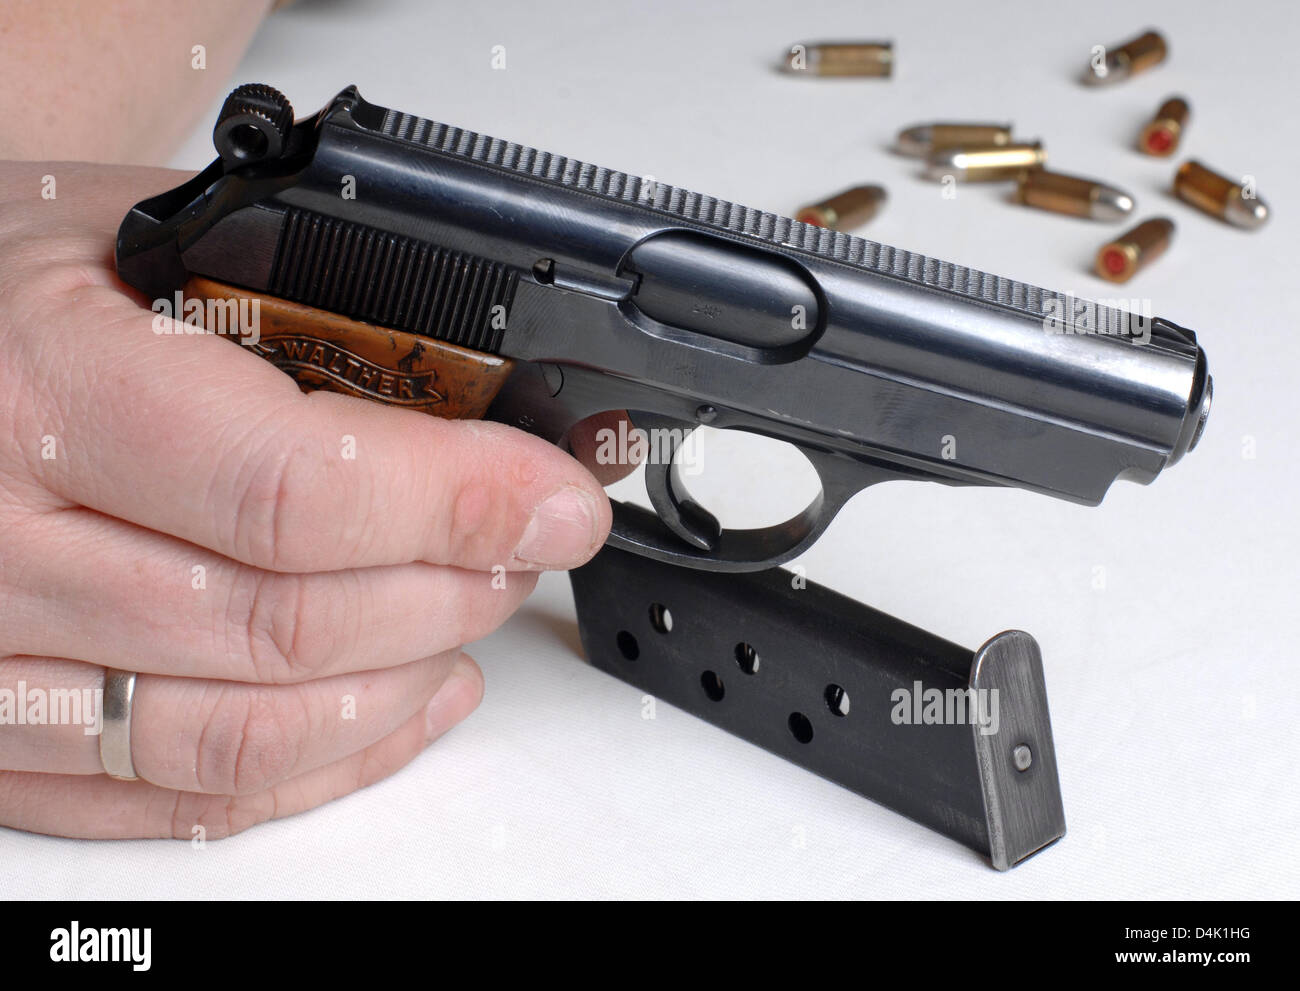 walther ppk pistol stock photos walther ppk pistol stock images rh alamy com Walther PPK James Bond Edition Walther PPK Archer